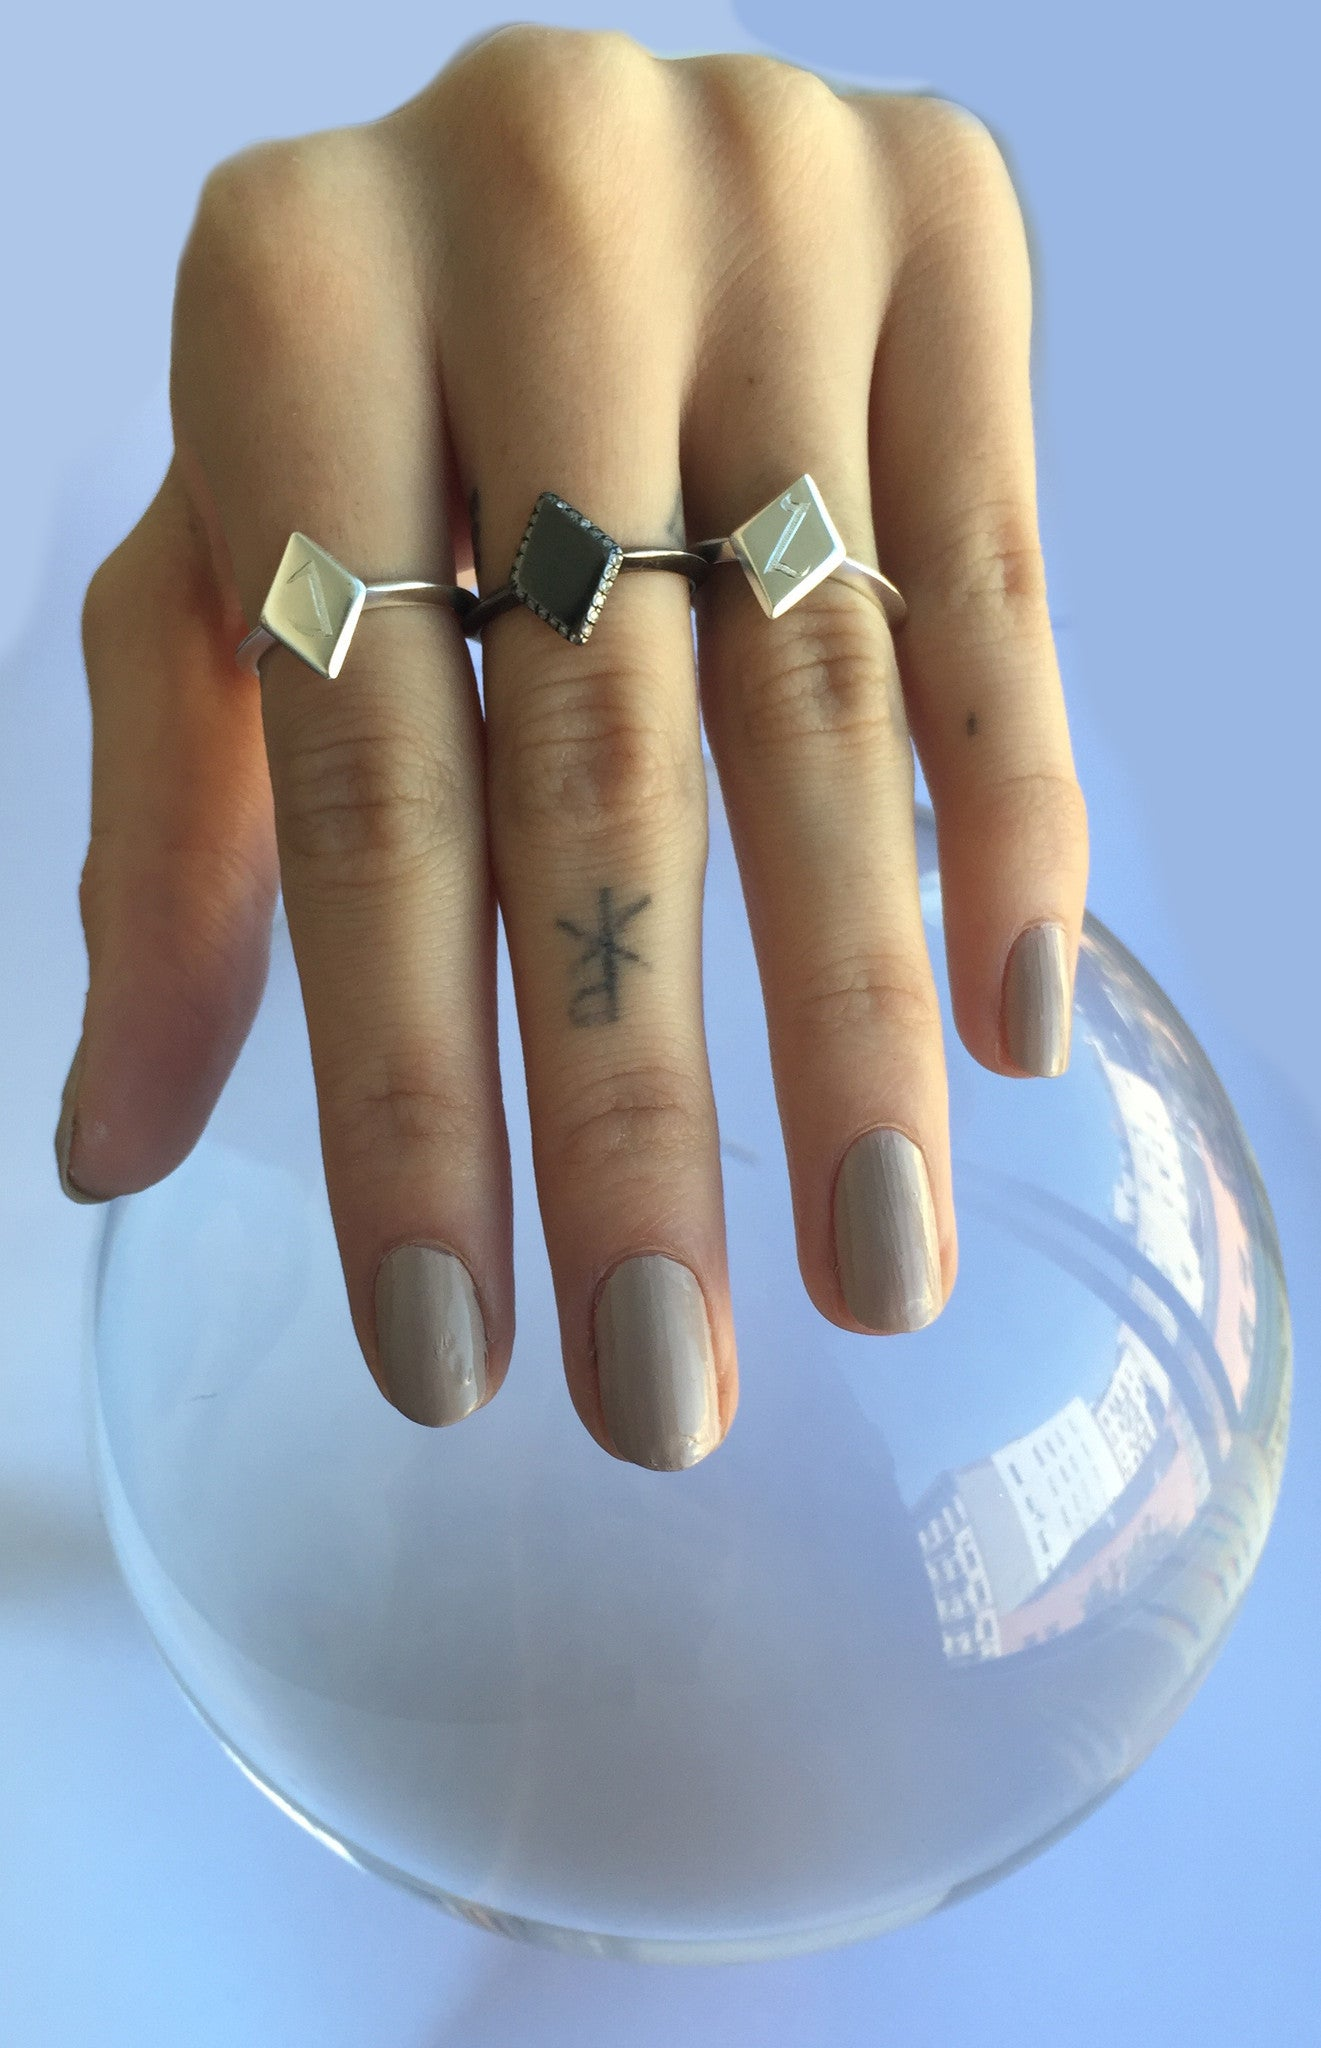 Engraved Initial Letter Monogram Diamond Kite Shape Ring Wendy Nichol Fine Jewelry Designer Handmade in NYC New York City solid 14k Gold Yellow Rose White Sterling Silver Diamond Signet Dracula Vampire Ring Custom Engraving Knife Edge Band